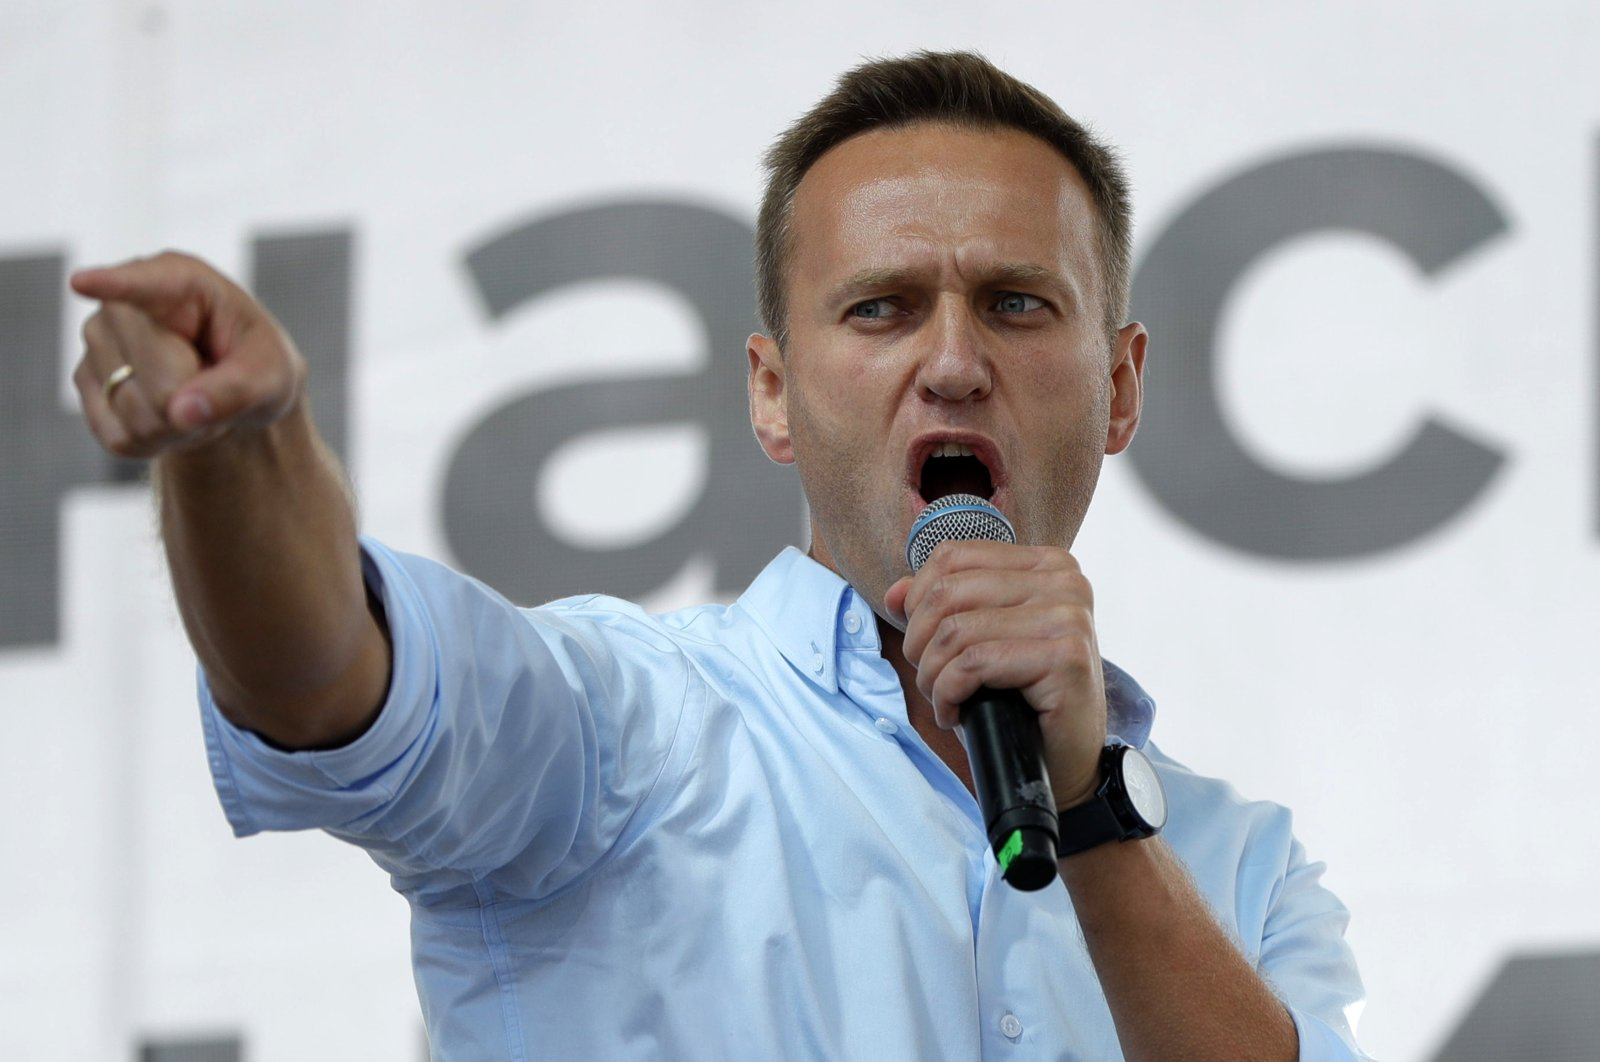 Russian opposition activist Alexei Navalny gestures while speaking to a crowd during a political protest in Moscow, Russia, July 20, 2019. (AP Photo)